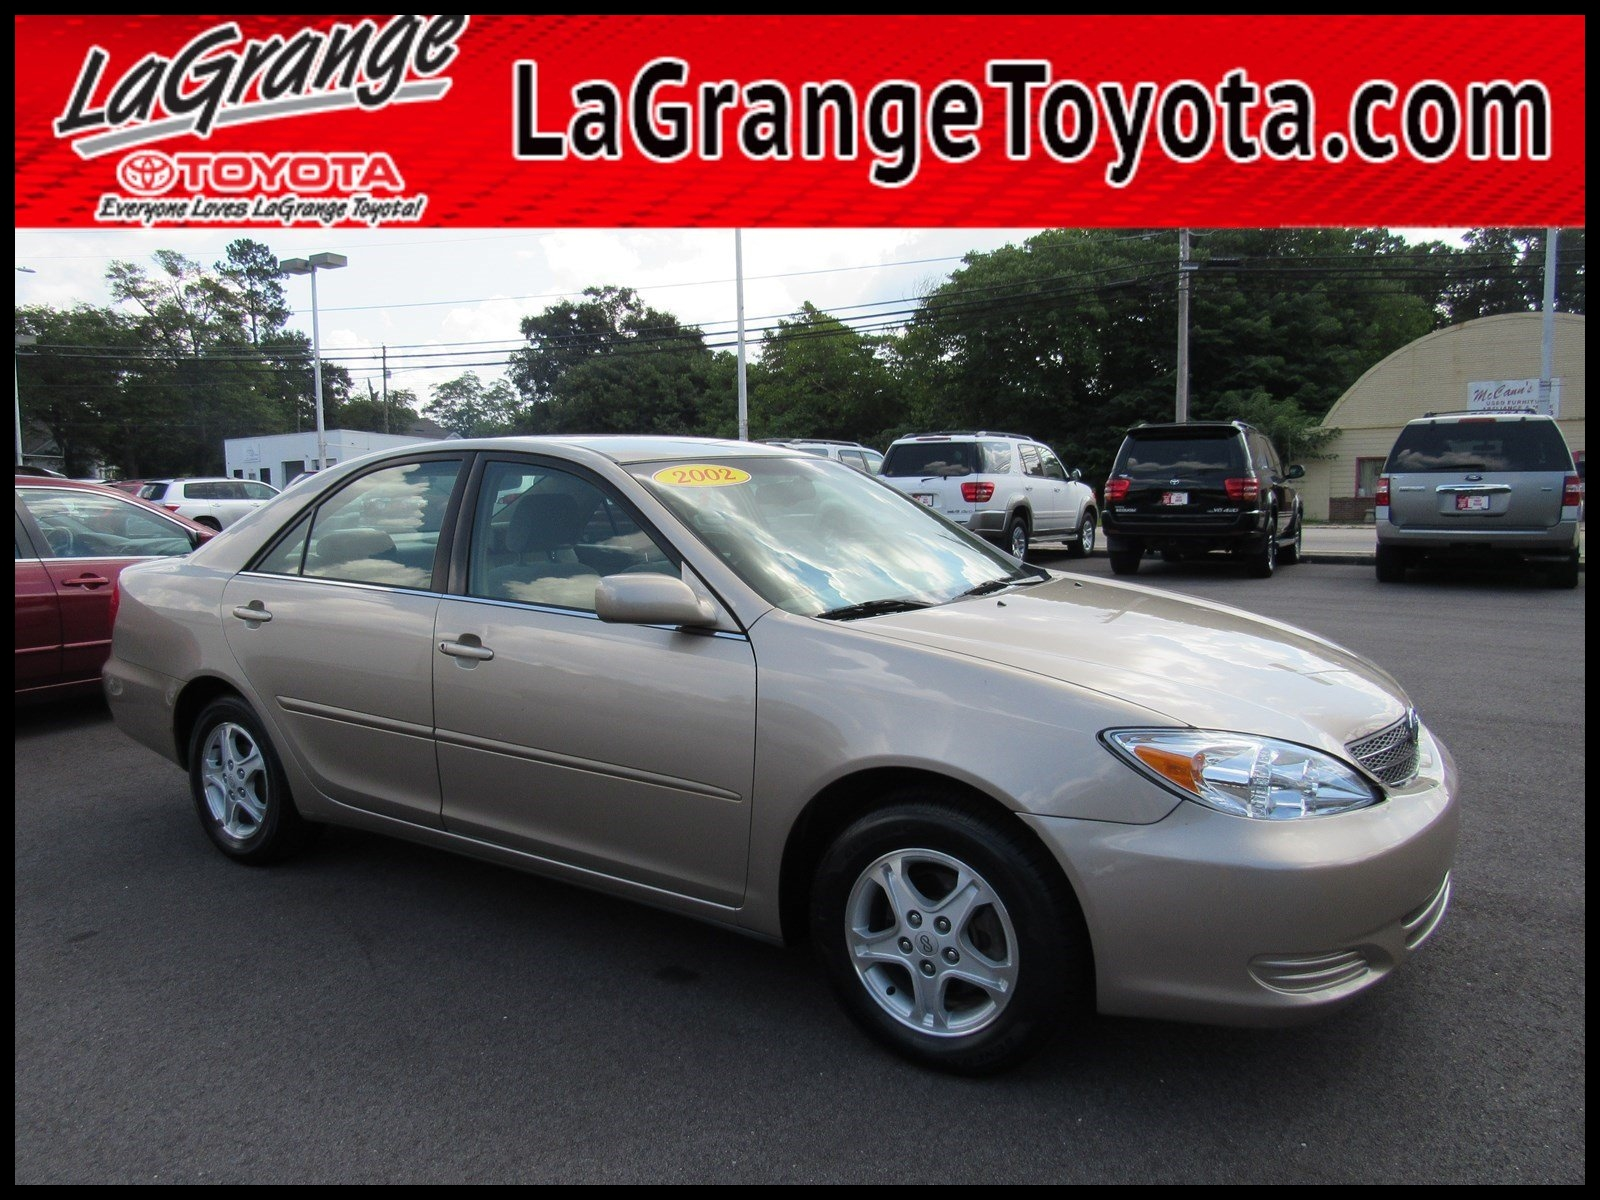 Pre Owned 2002 Toyota Camry 4dr Sdn LE Auto